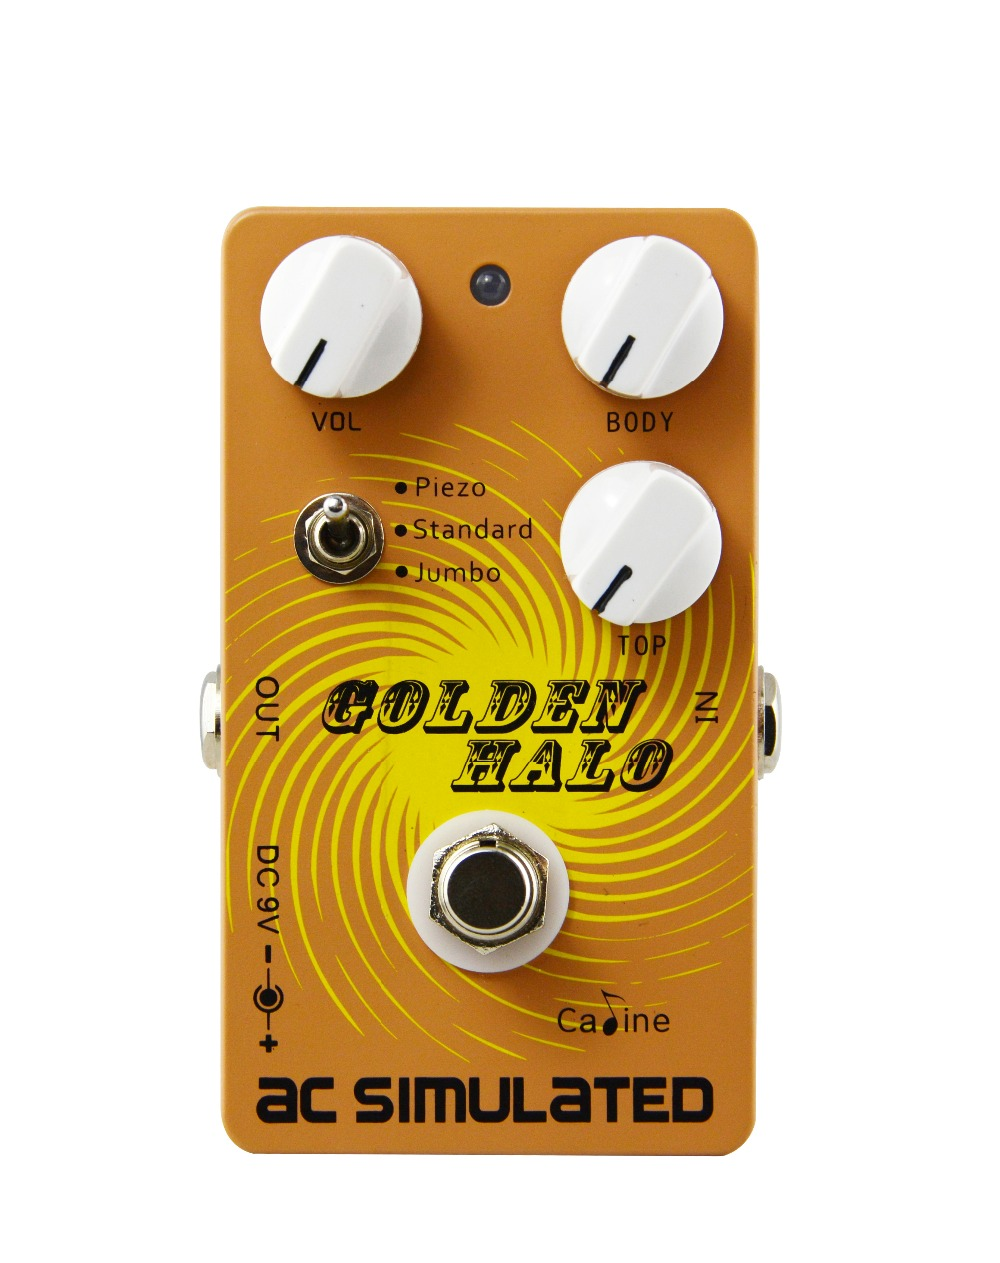 New Arrival Caline CP-35 AC Simulated Guitar Effect Pedals Acoustic Effects Guitar Parts Three Knobs Gold Color плиткорез hammer plr450 flex